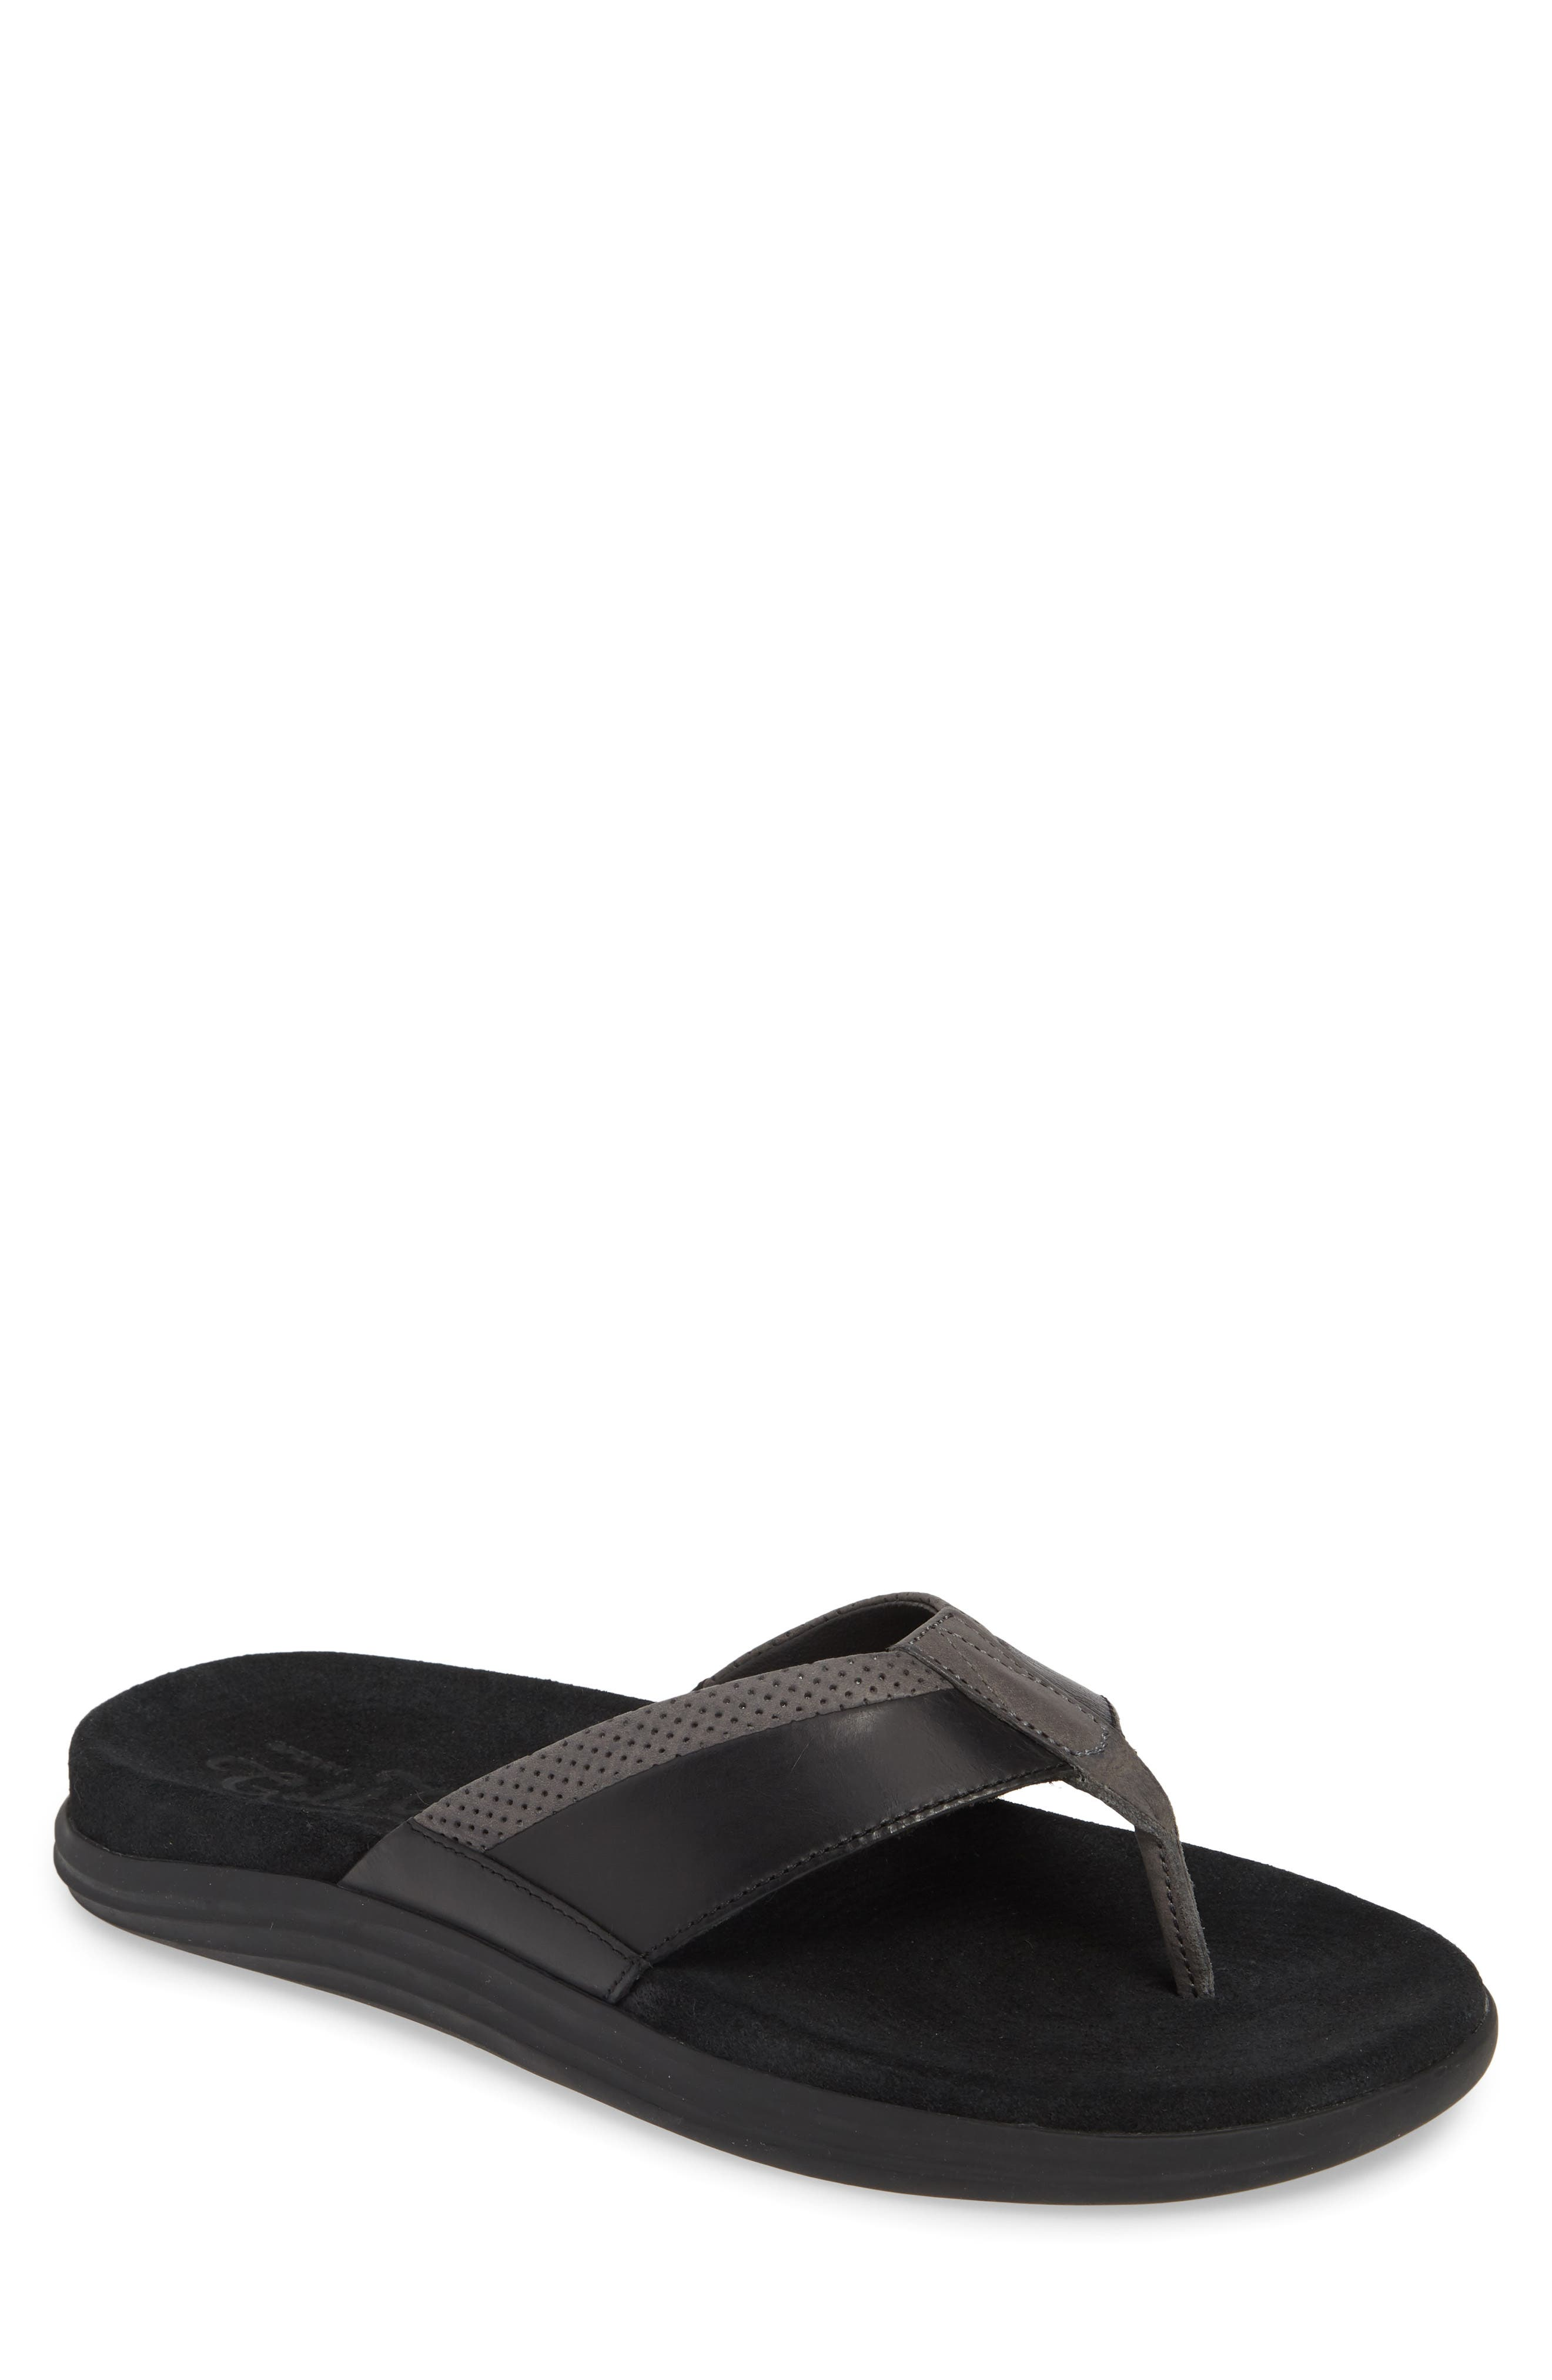 Image of Sperry Gold Cup Amalfi Flip Flop